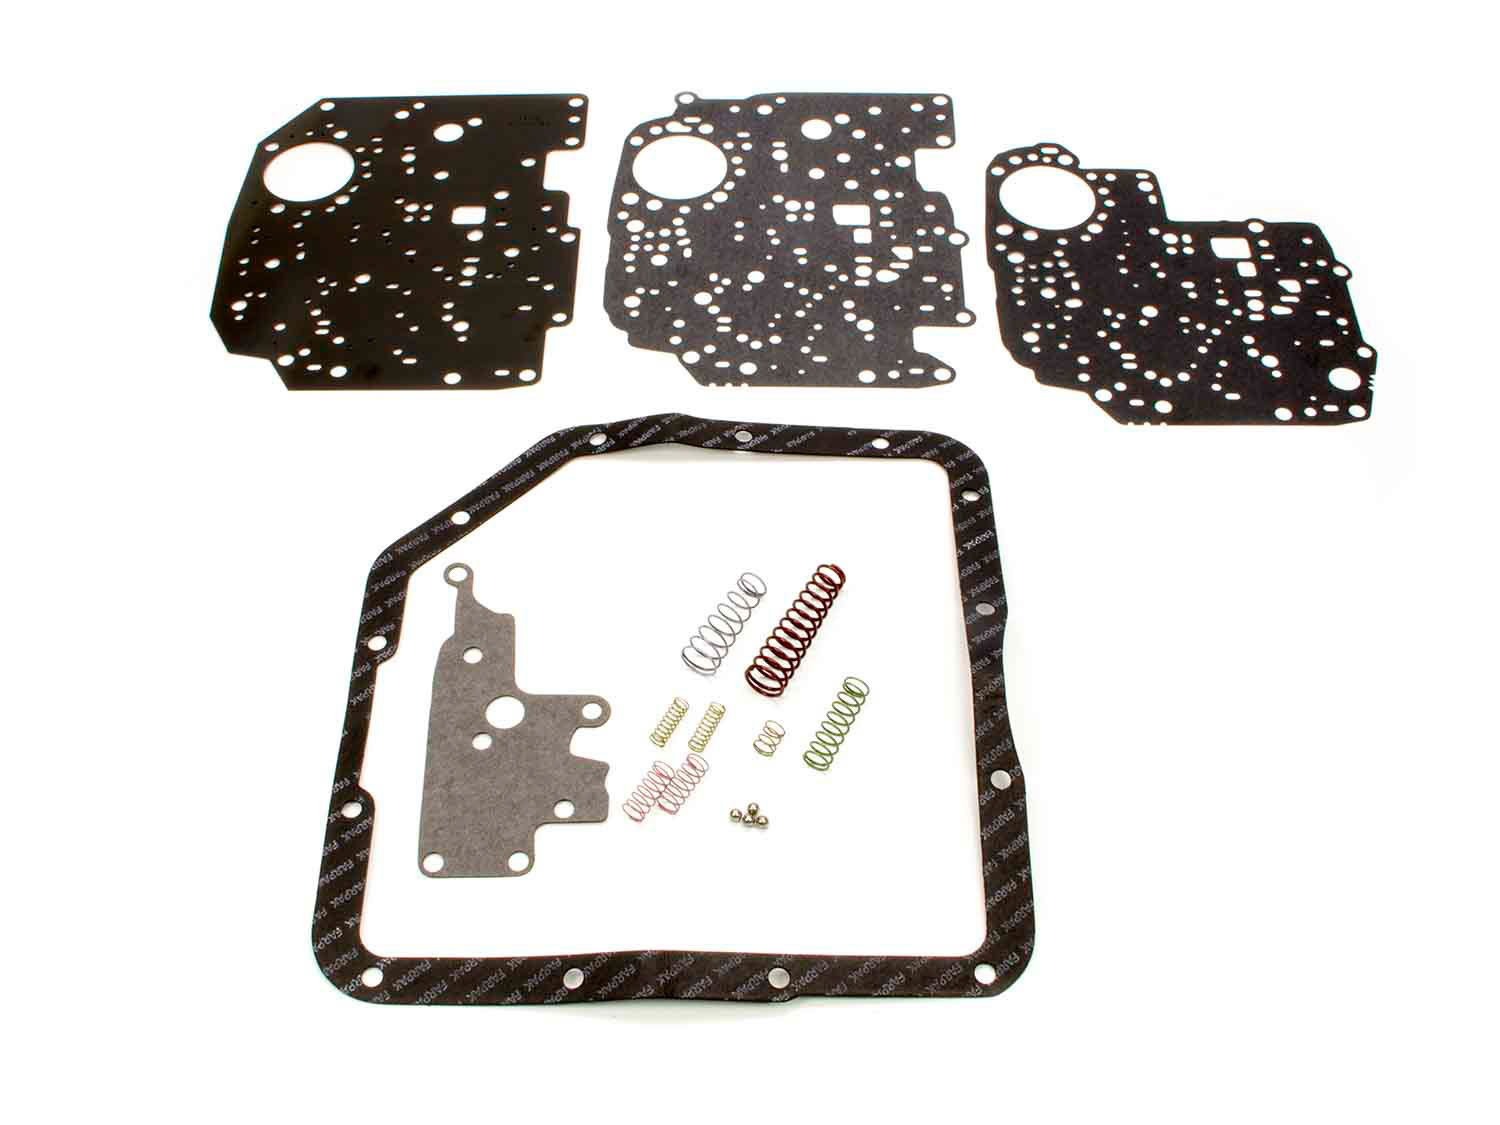 Tci TH350 Shift Improver Kit 68-Up